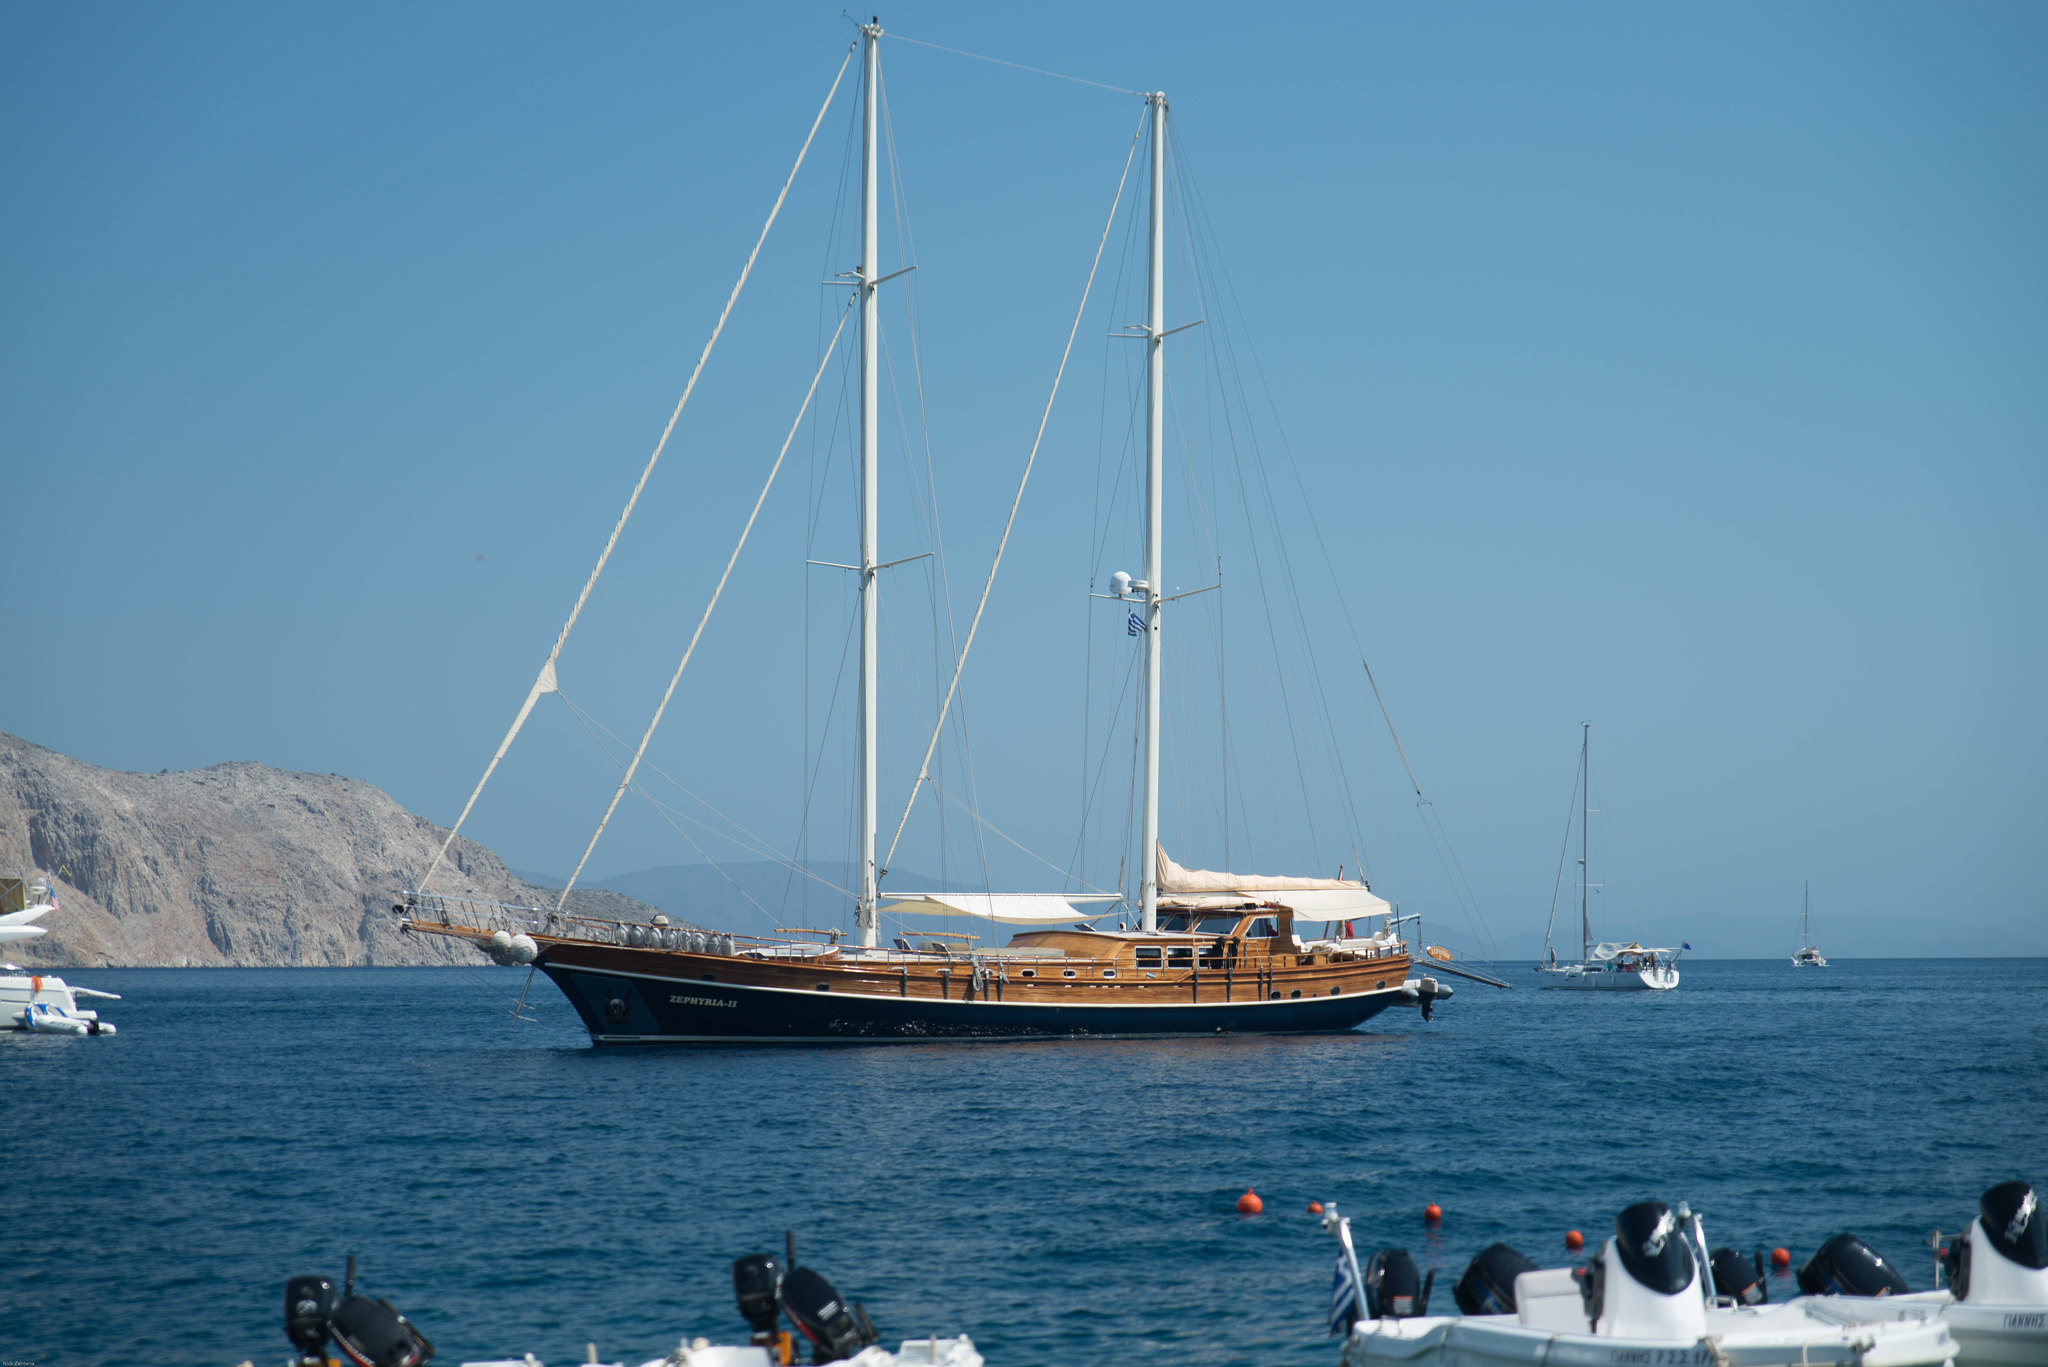 Two masted Sailing ship in Symi Greece harbour